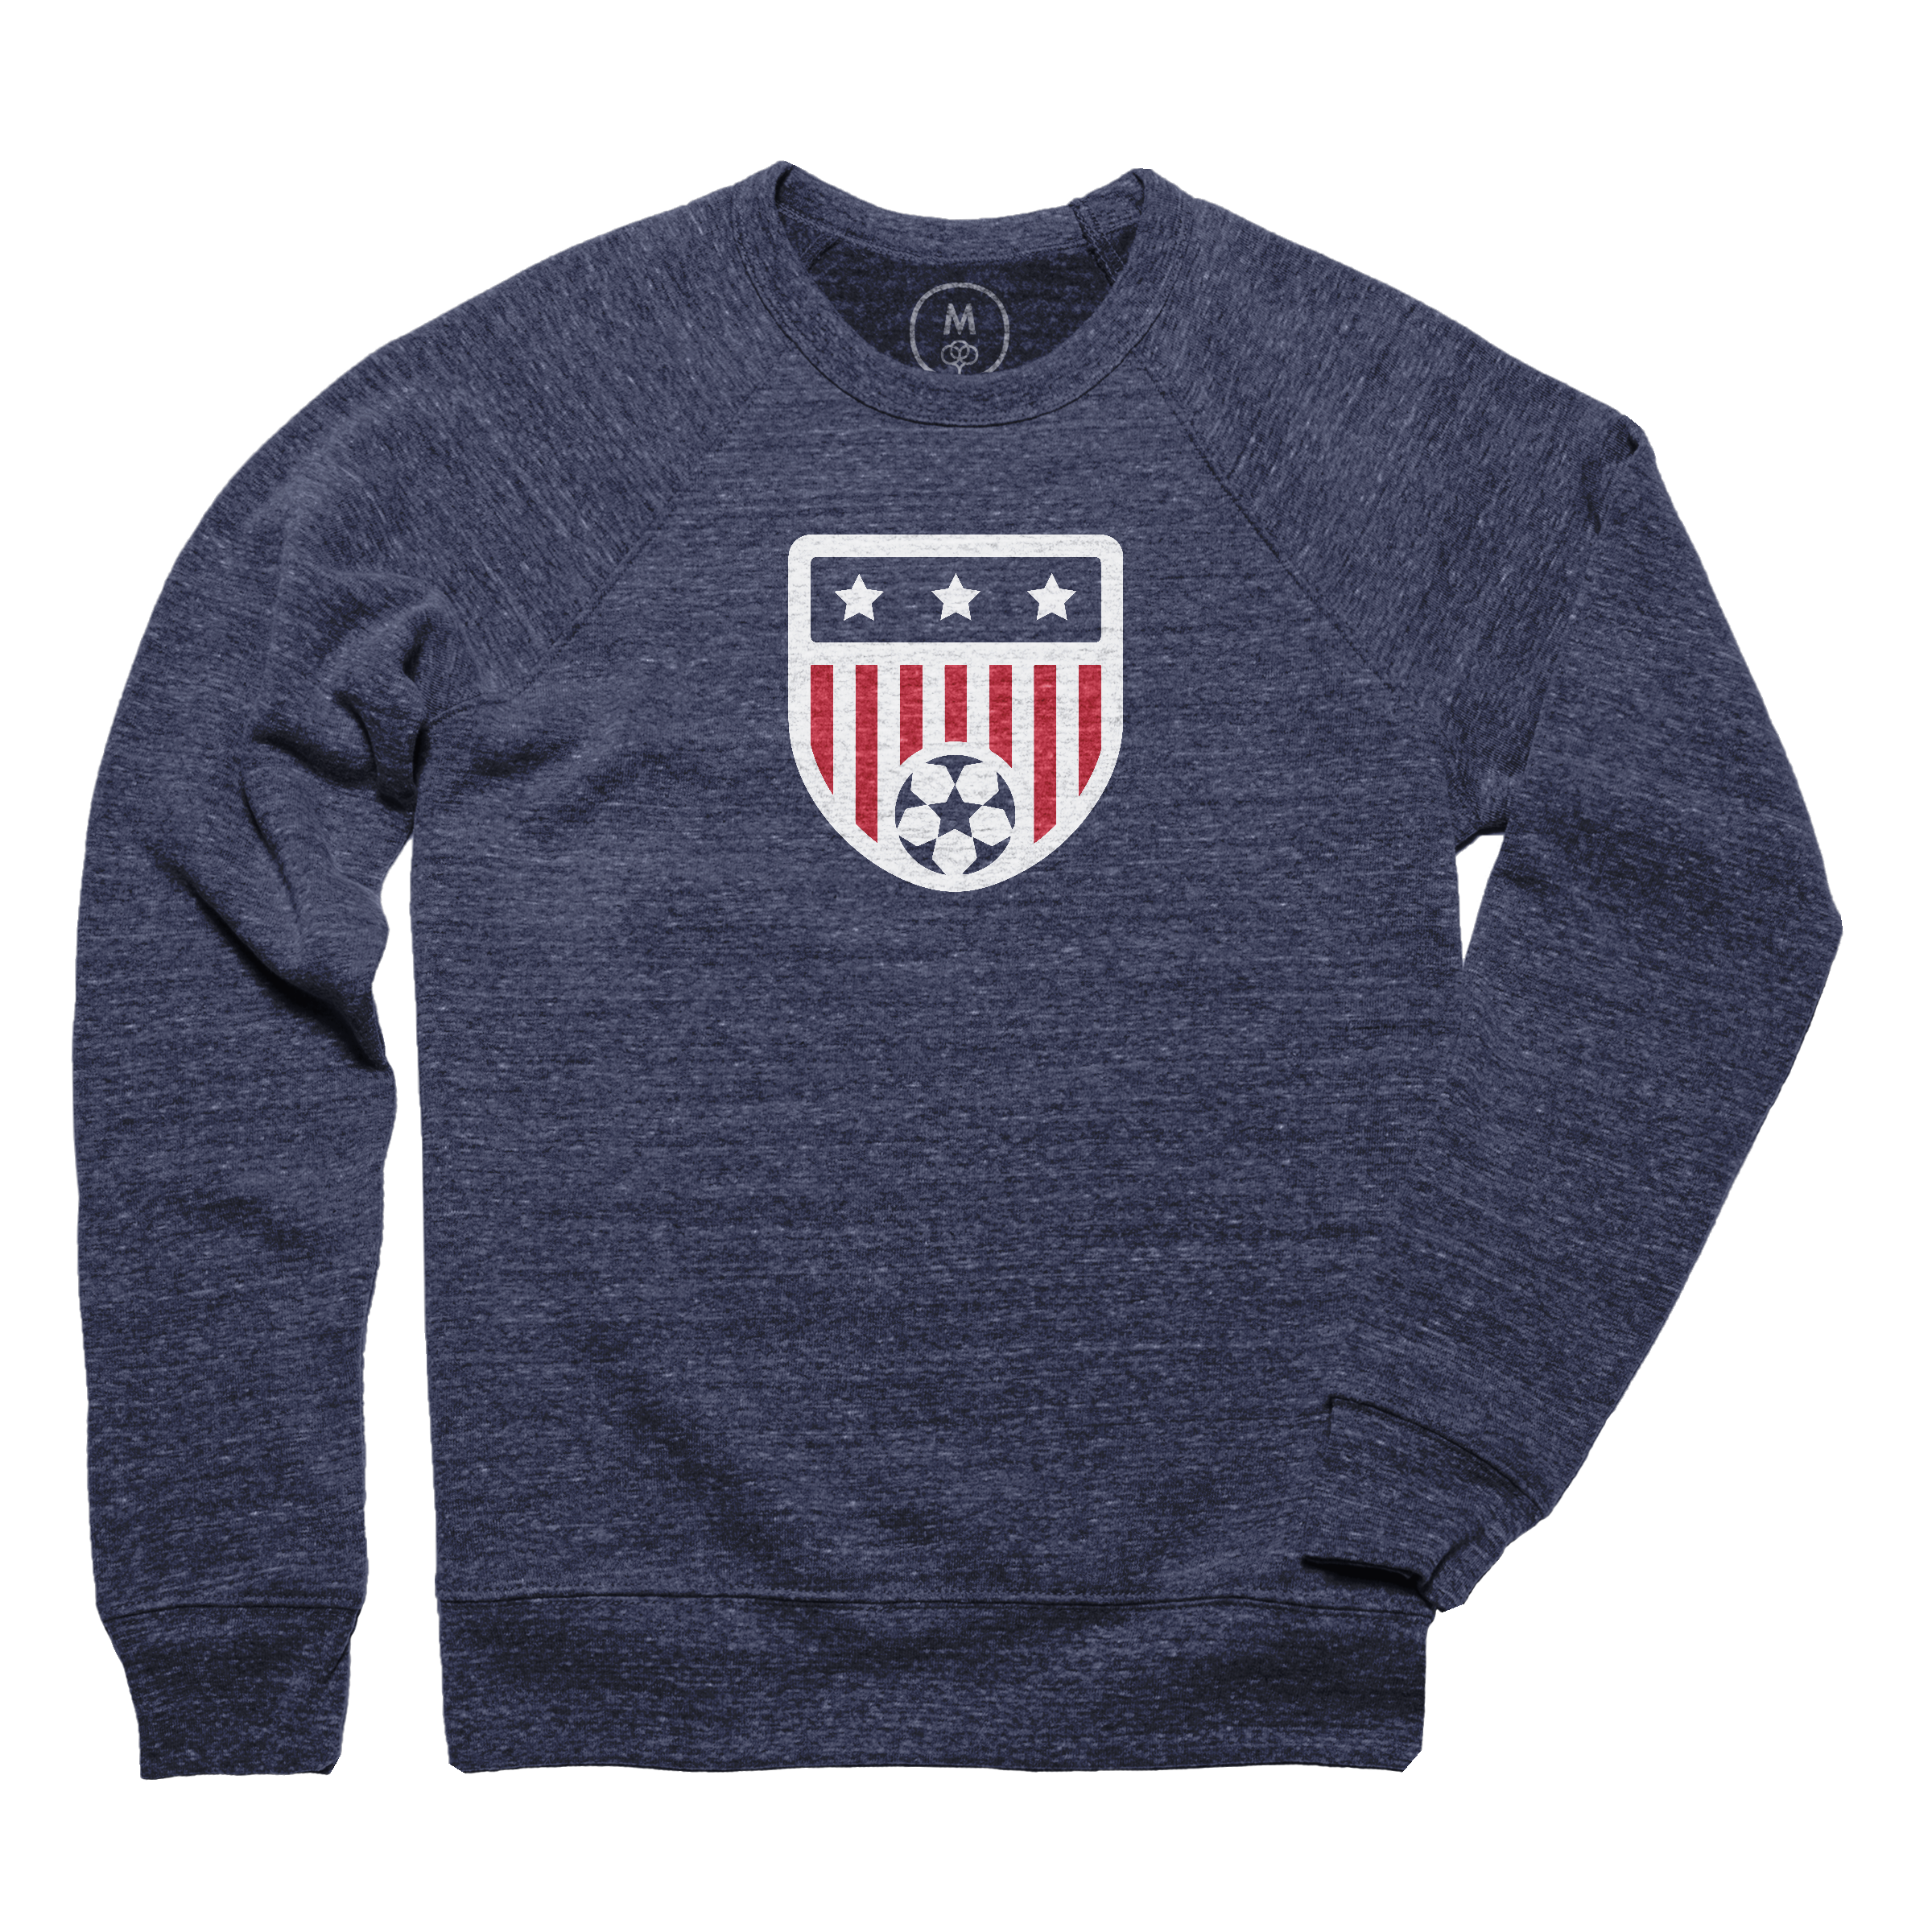 USA, All The Way! Pullover Crewneck